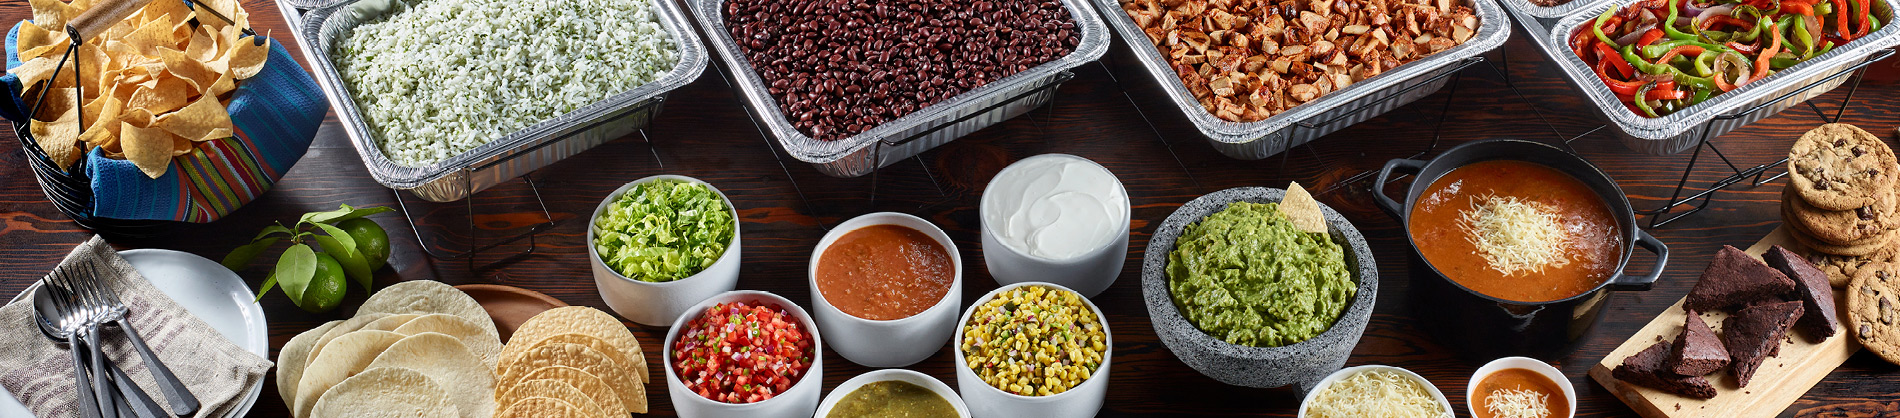 Cater Your Corporate Event or Party with Fresh and Affordable Mexican Food from Qdoba Cincinnati